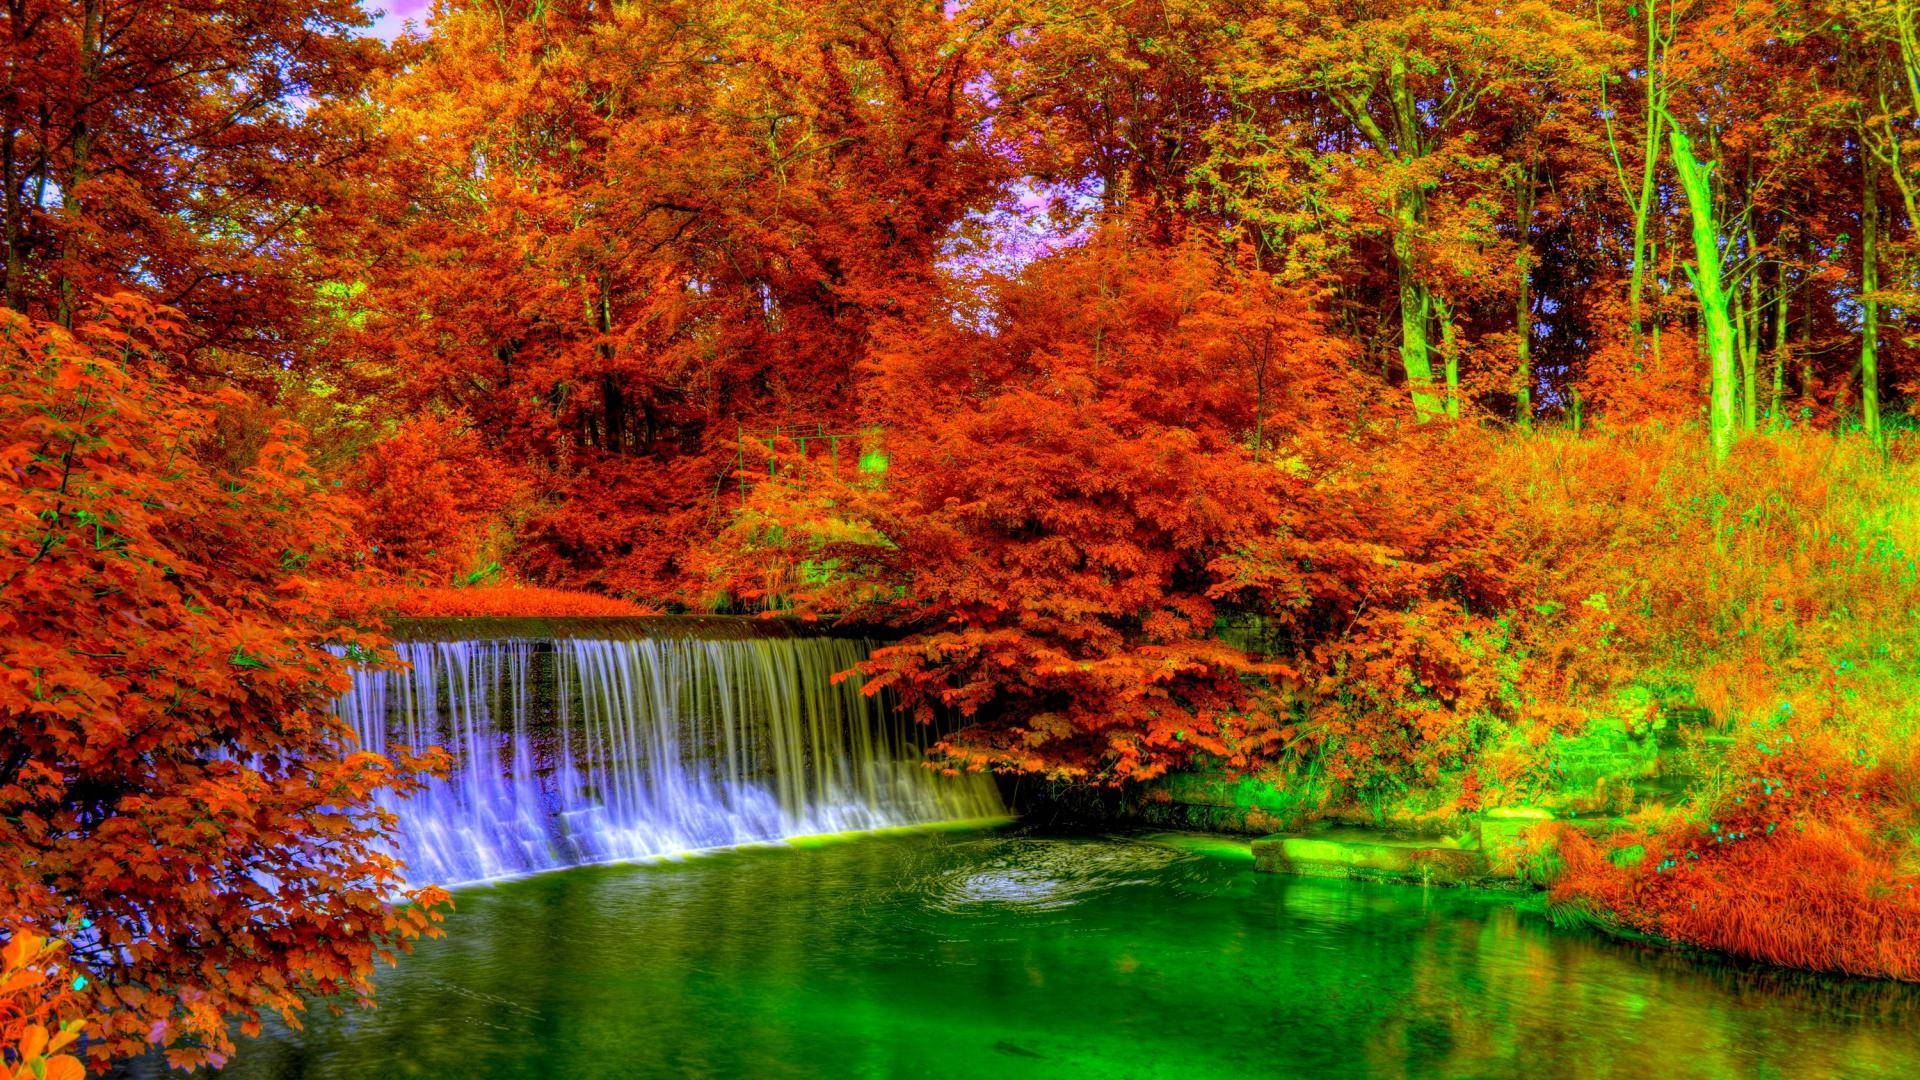 21 Autumn Wallpapers Backgrounds Images FreeCreatives